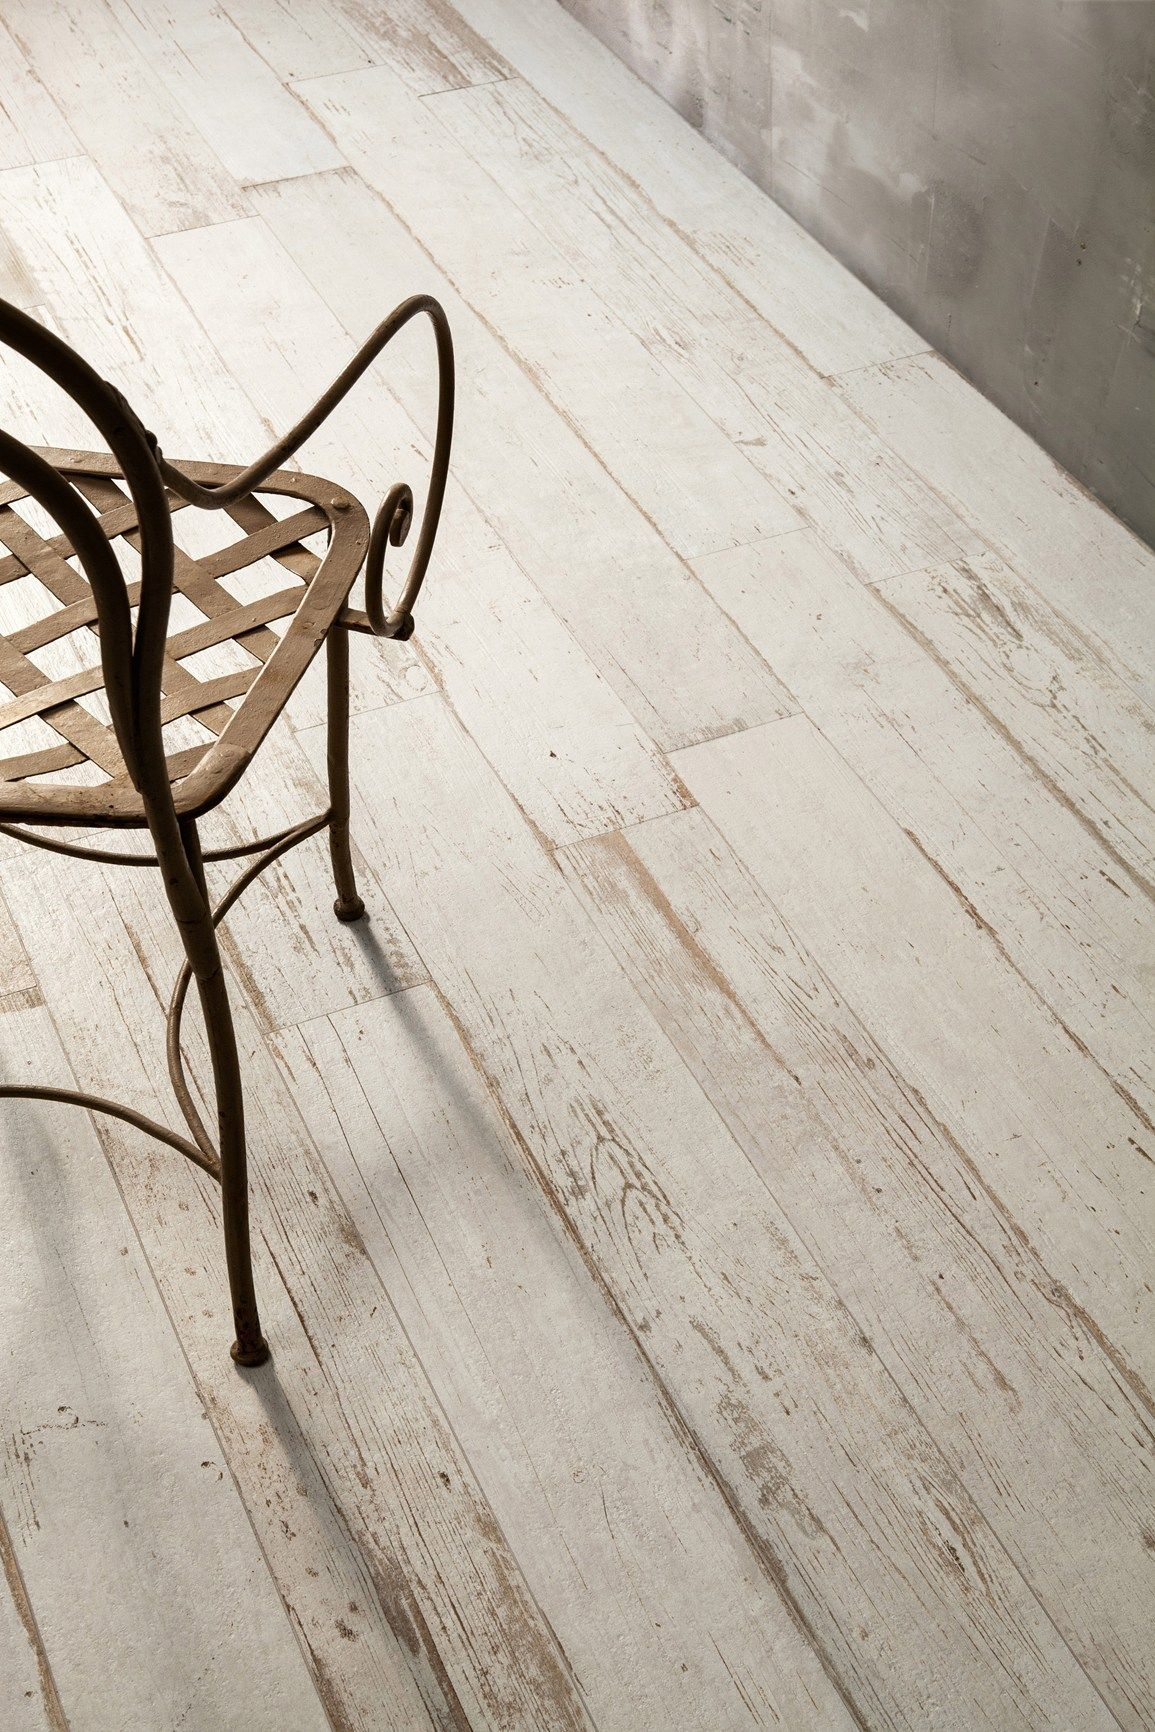 this incredible distressed wood floor has a secret its not really wood its wood looking tile introducing blendart the new porcelain tile collection - White Distressed Flooring